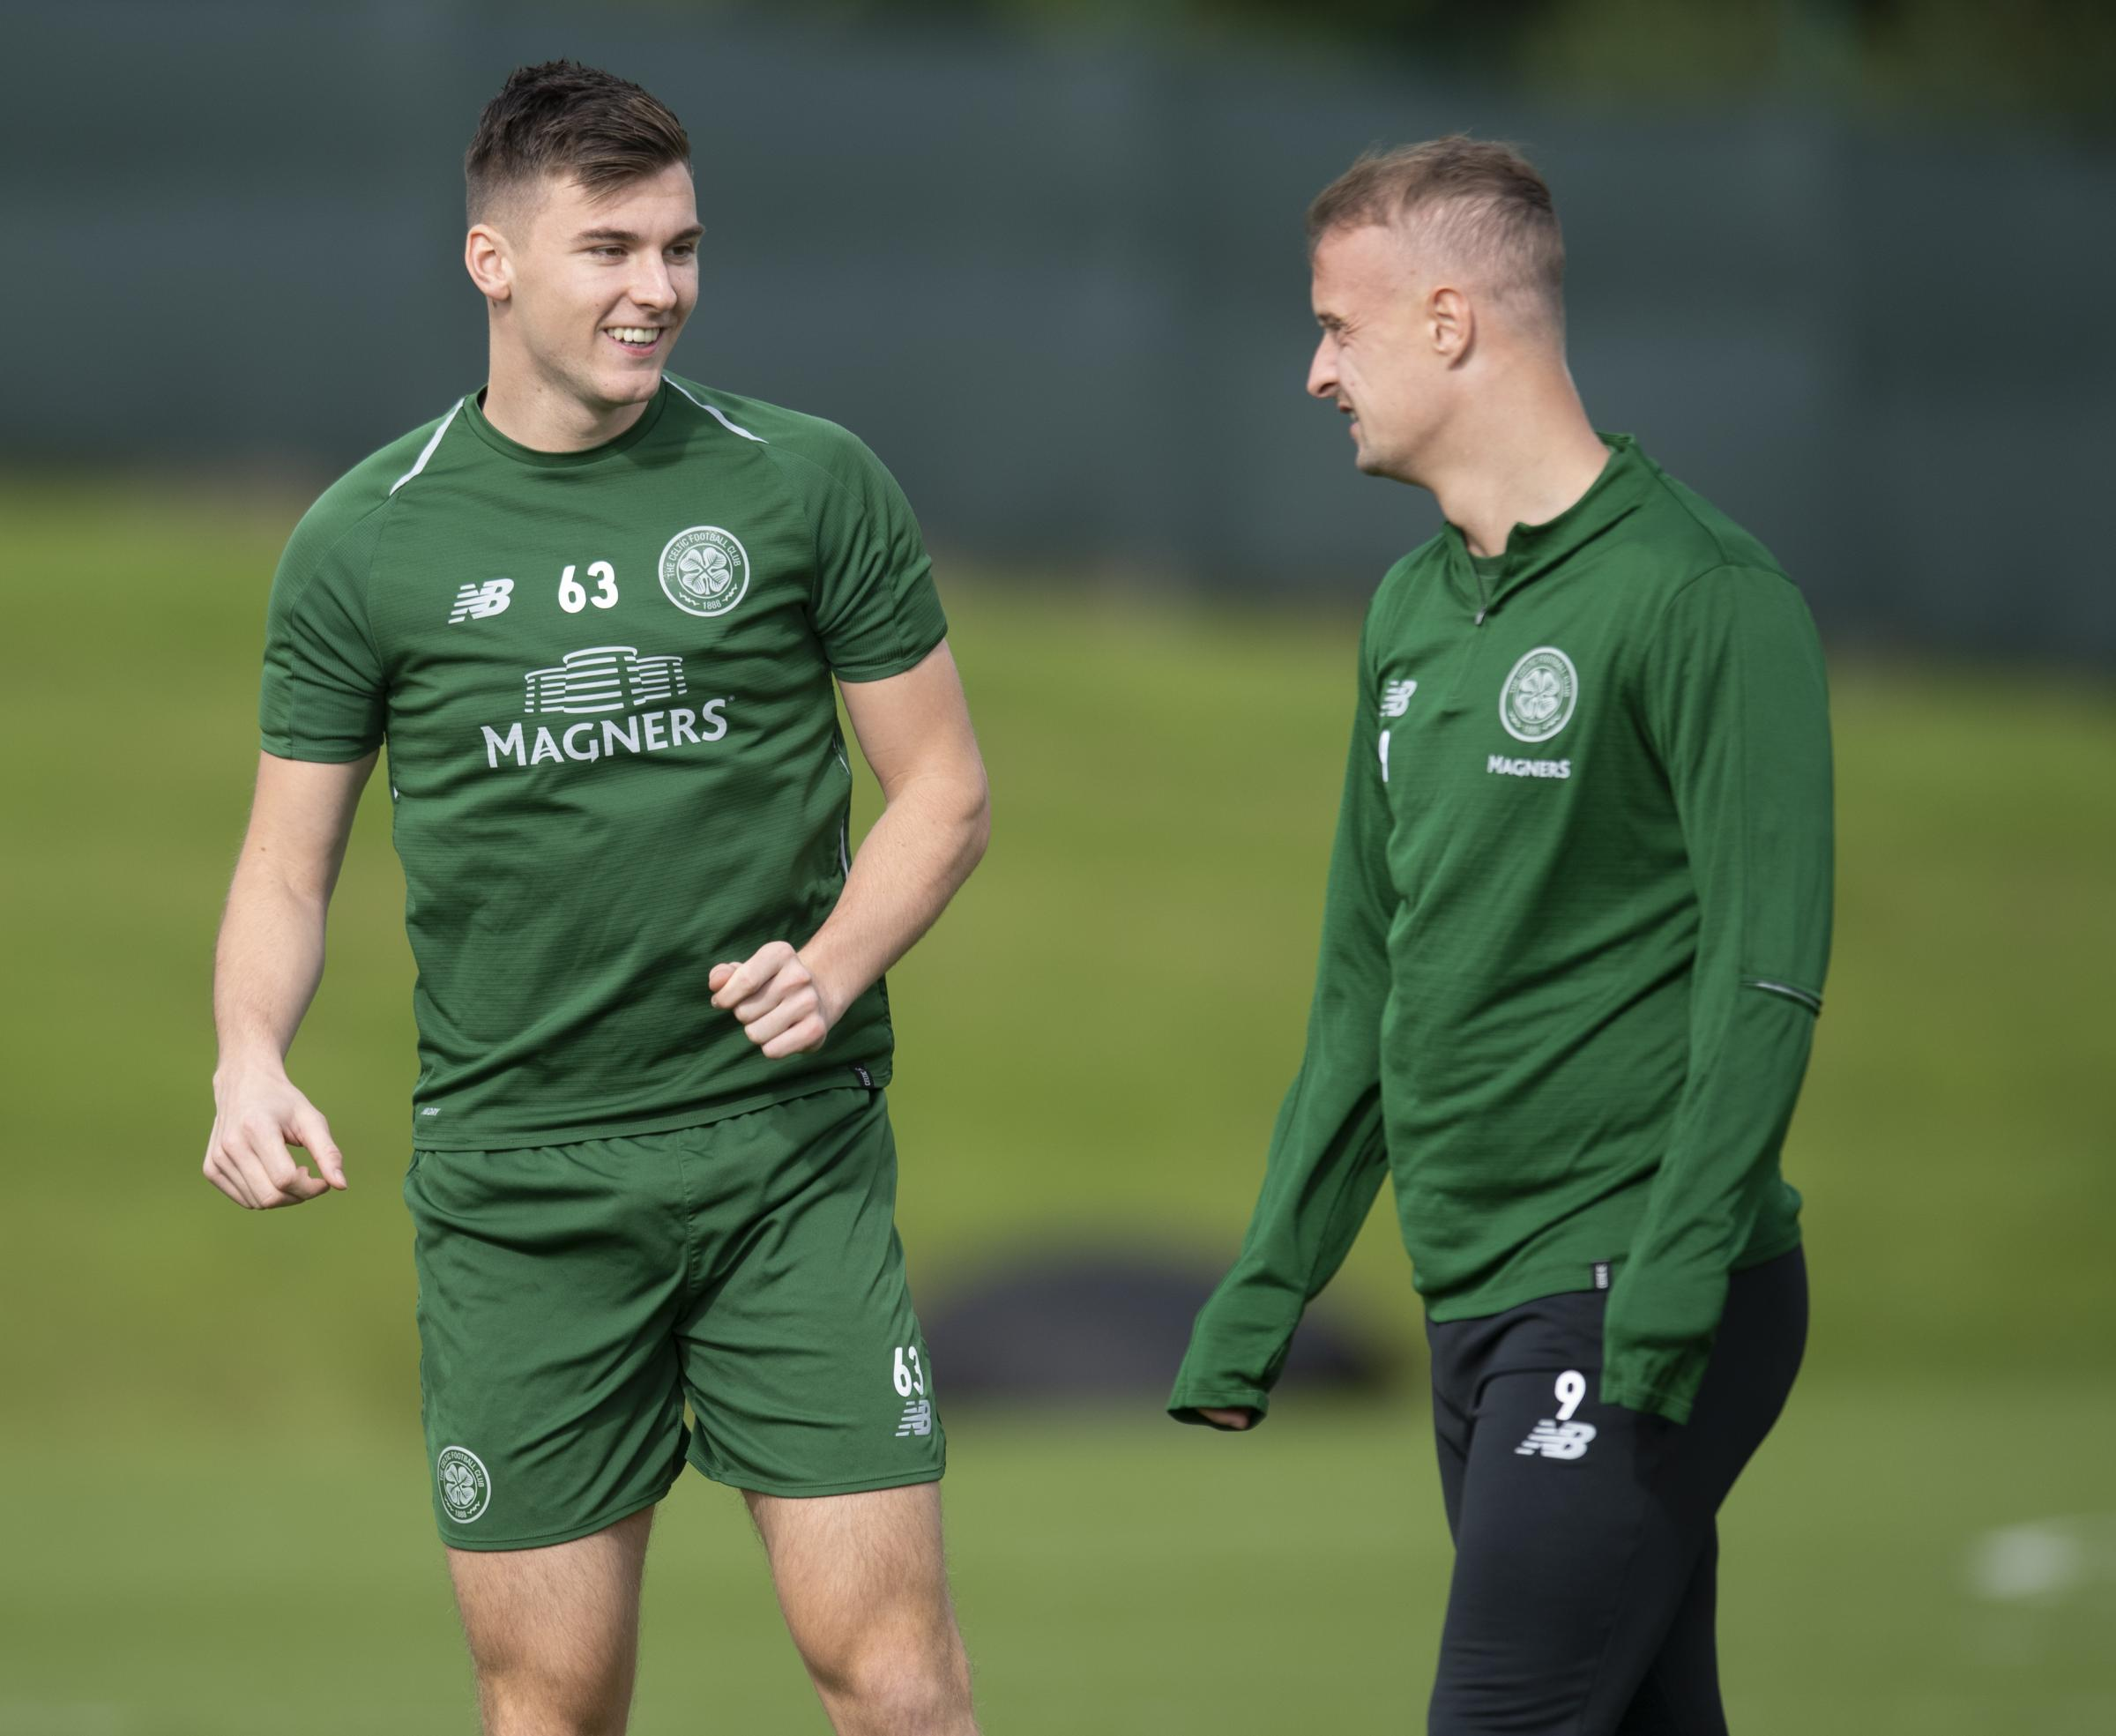 Kieran Tierney, left, and Leigh Griffiths, right, in Celtic training.